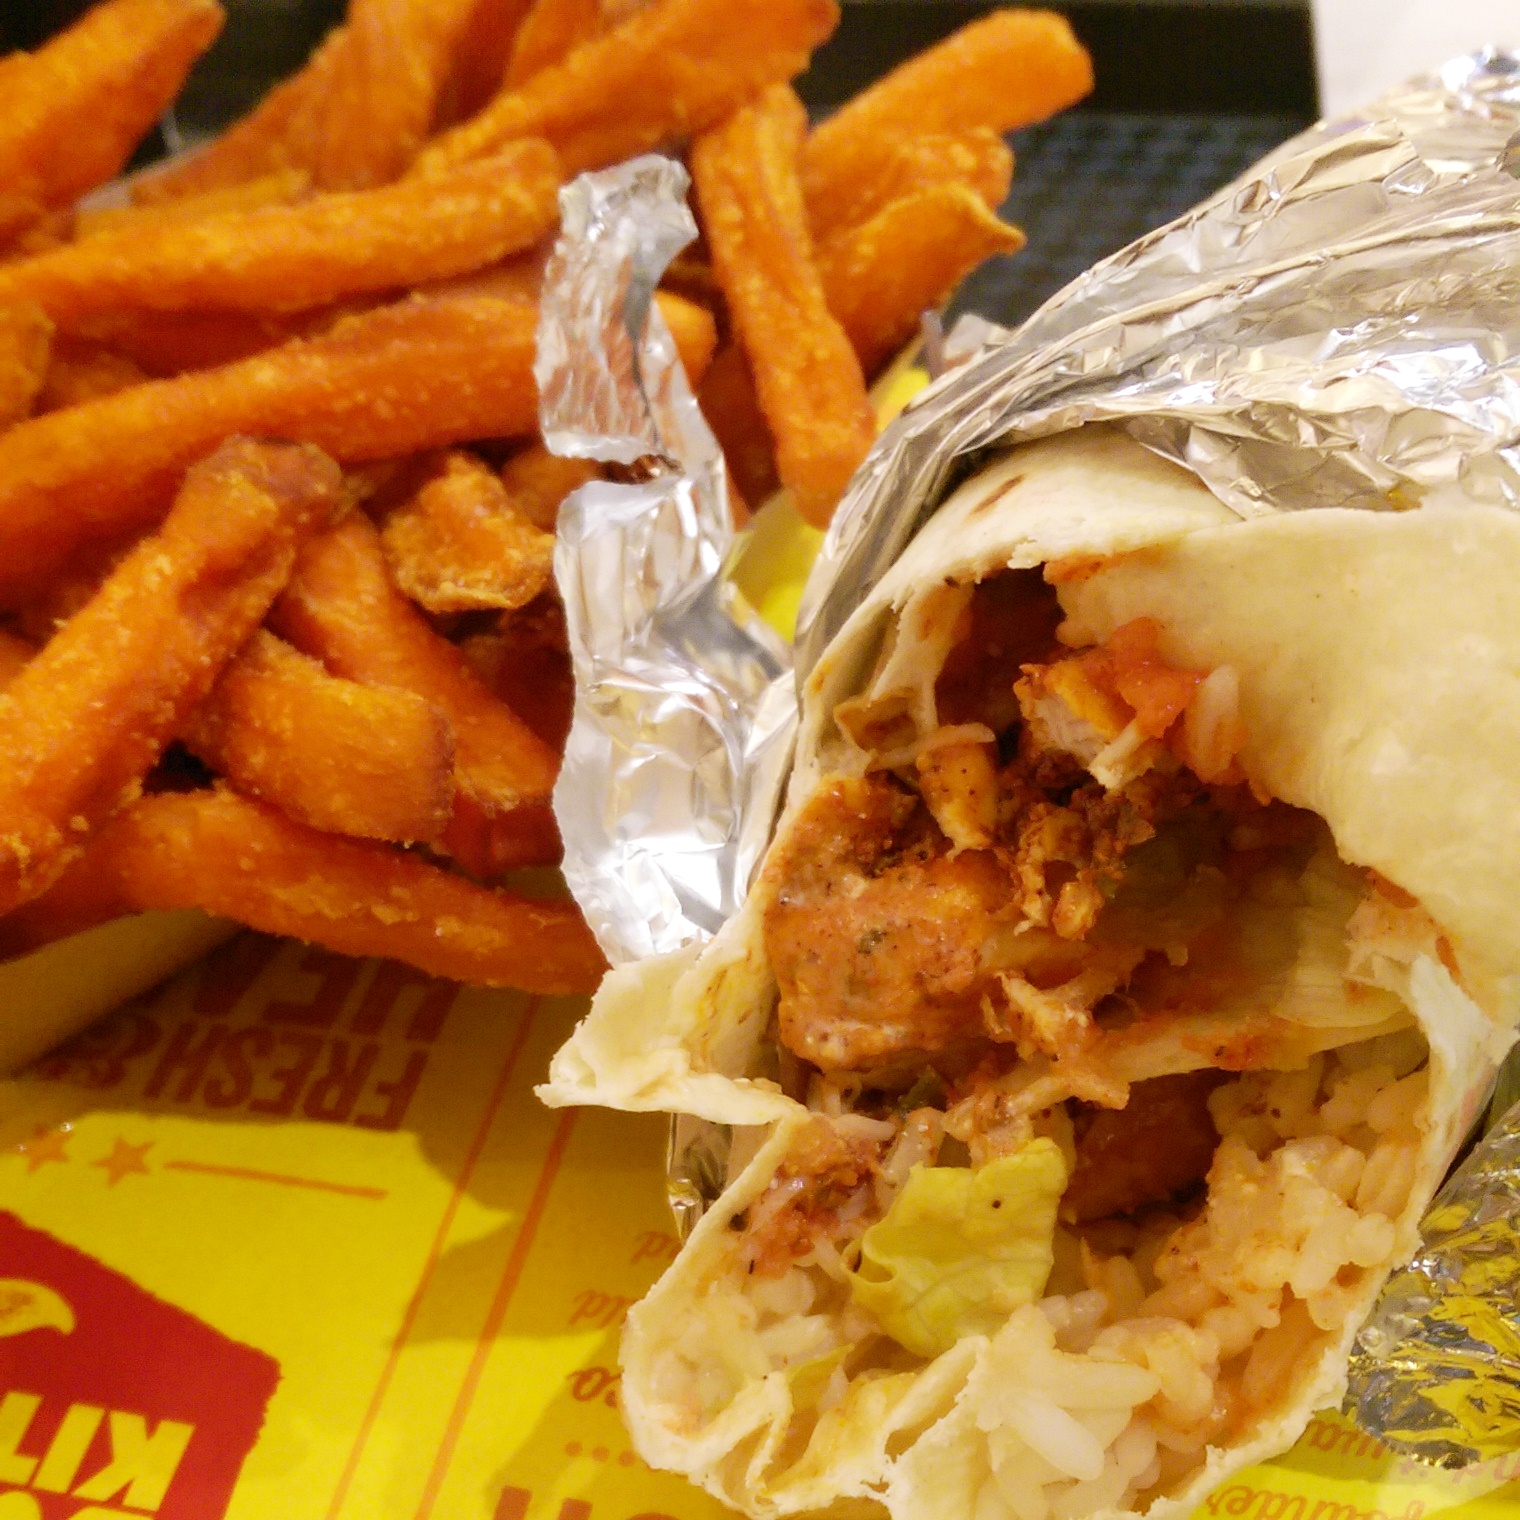 UK food blog review of burrito kitchen in merryhill shopping centre.